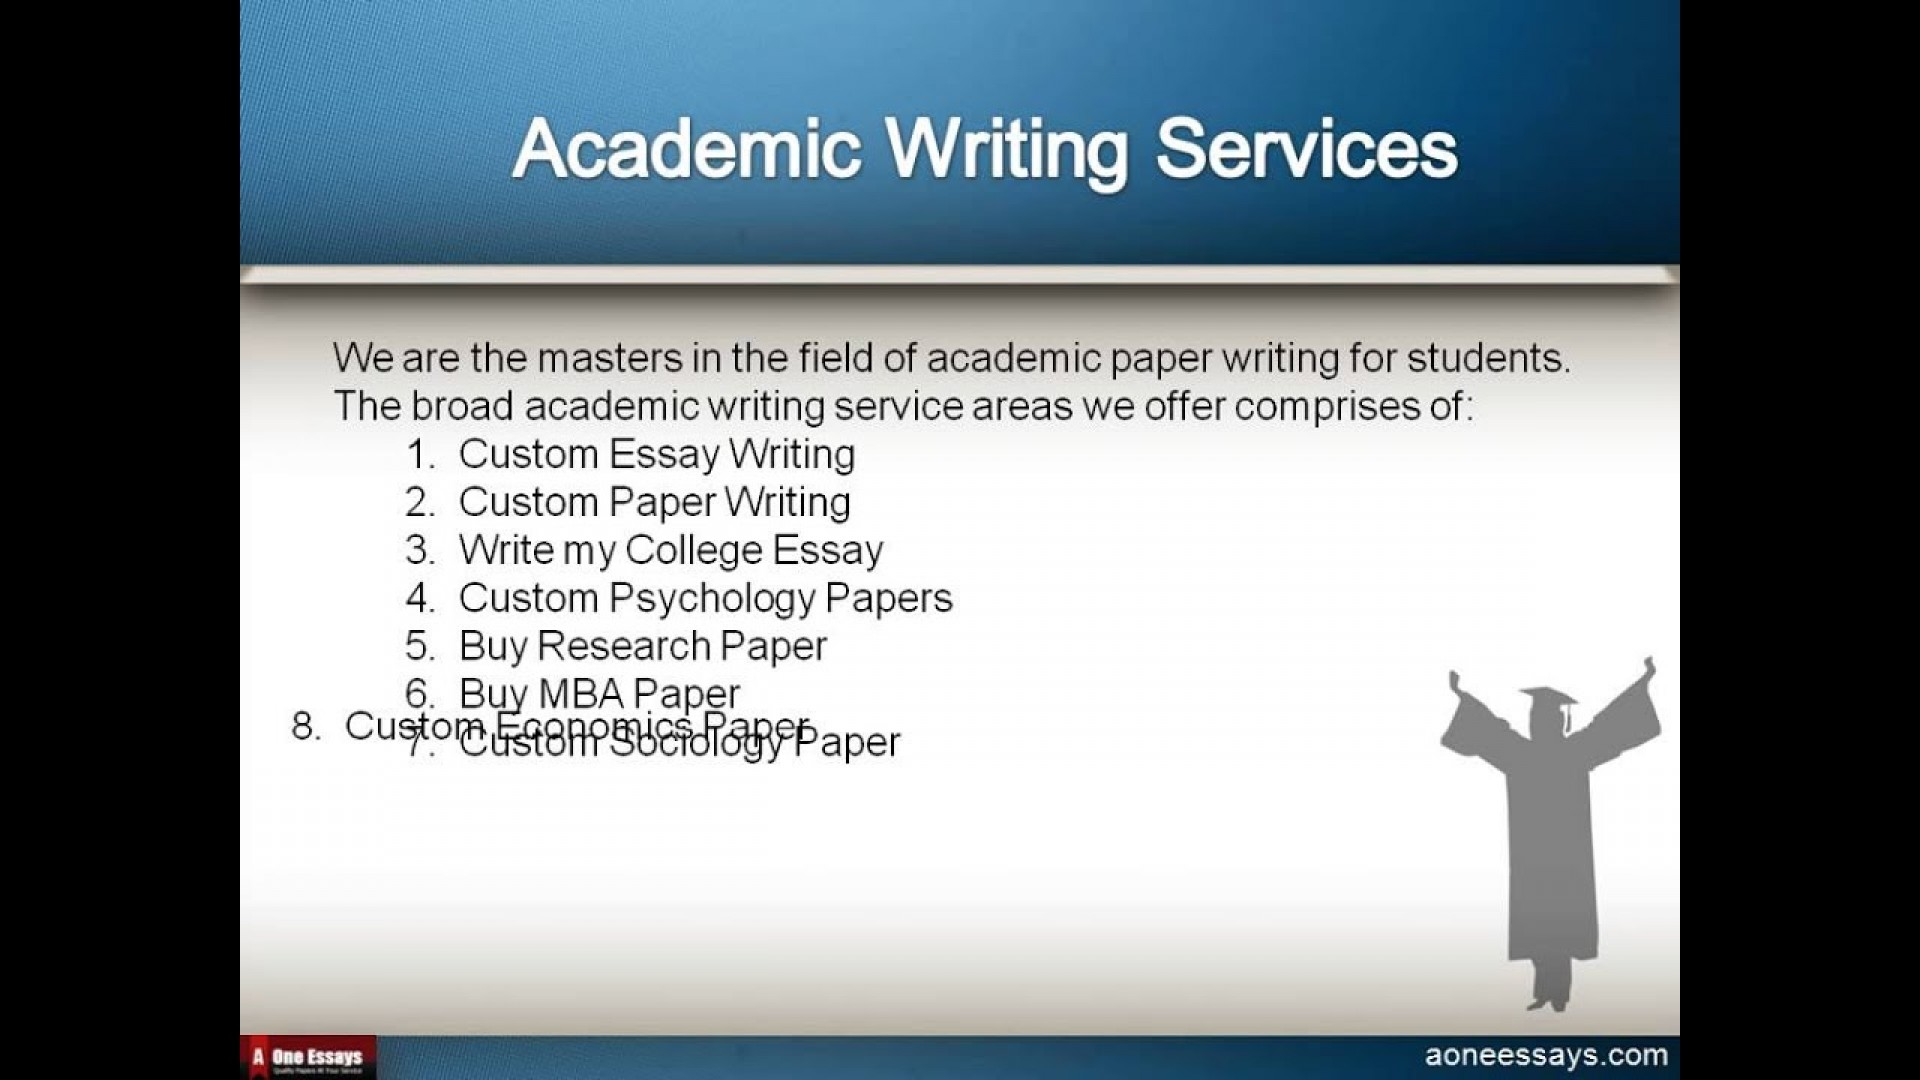 024 Research Paper Maxresdefault Best Fearsome Websites Top 10 Writing Free 1920